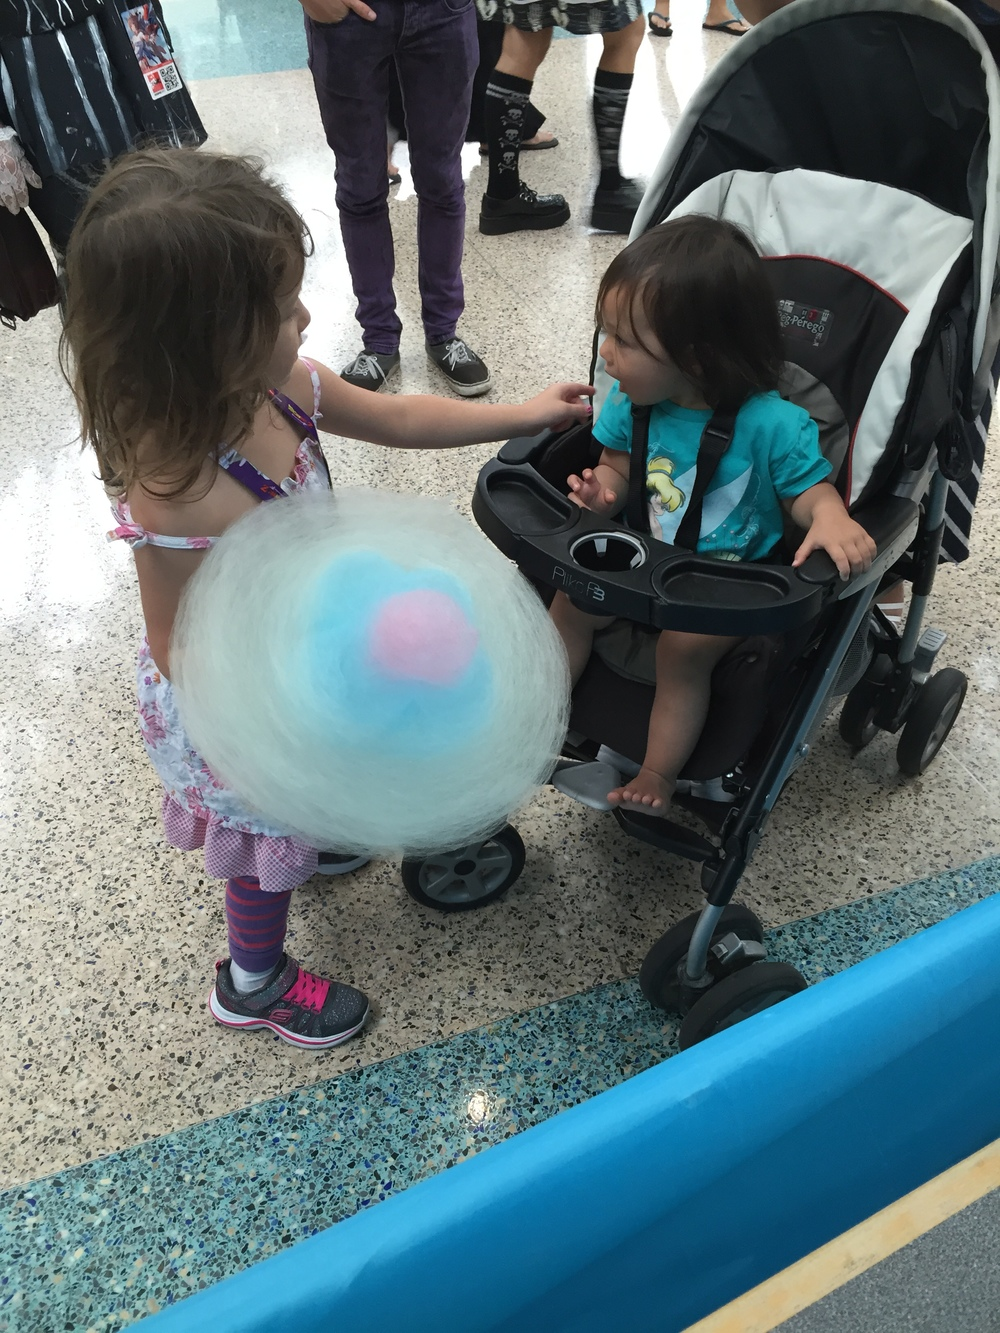 Lil big sister sharing a Cloud Flower with her lil little sister. ^-^